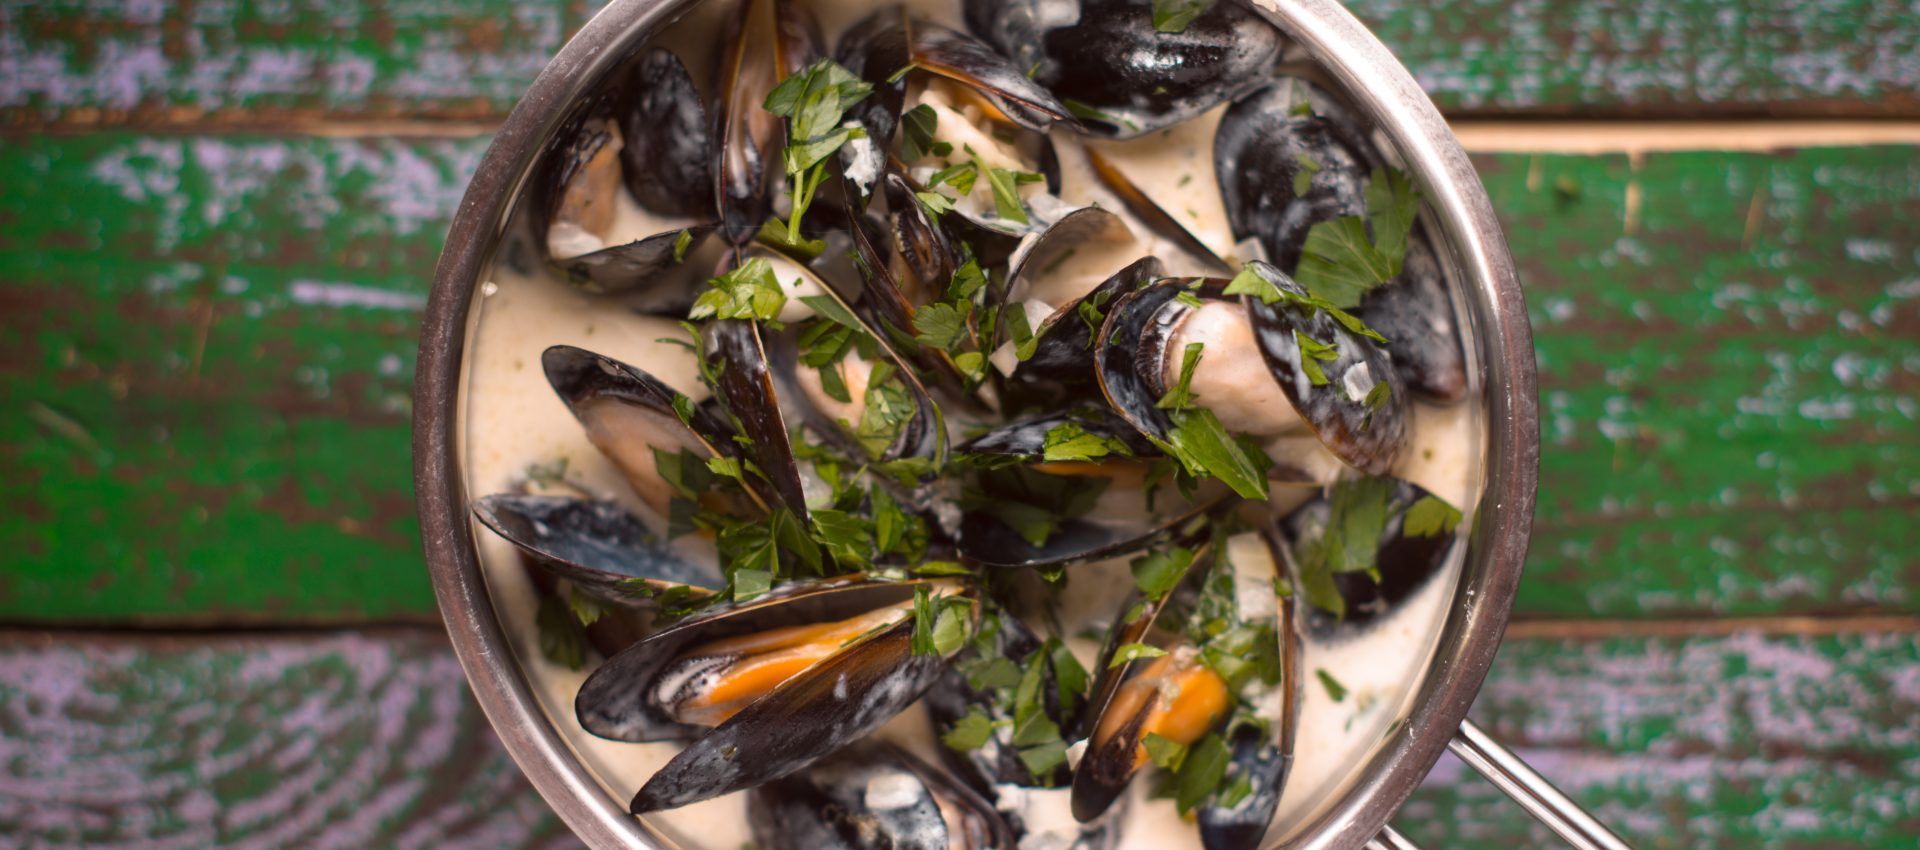 Moules au roquefort au cookeo